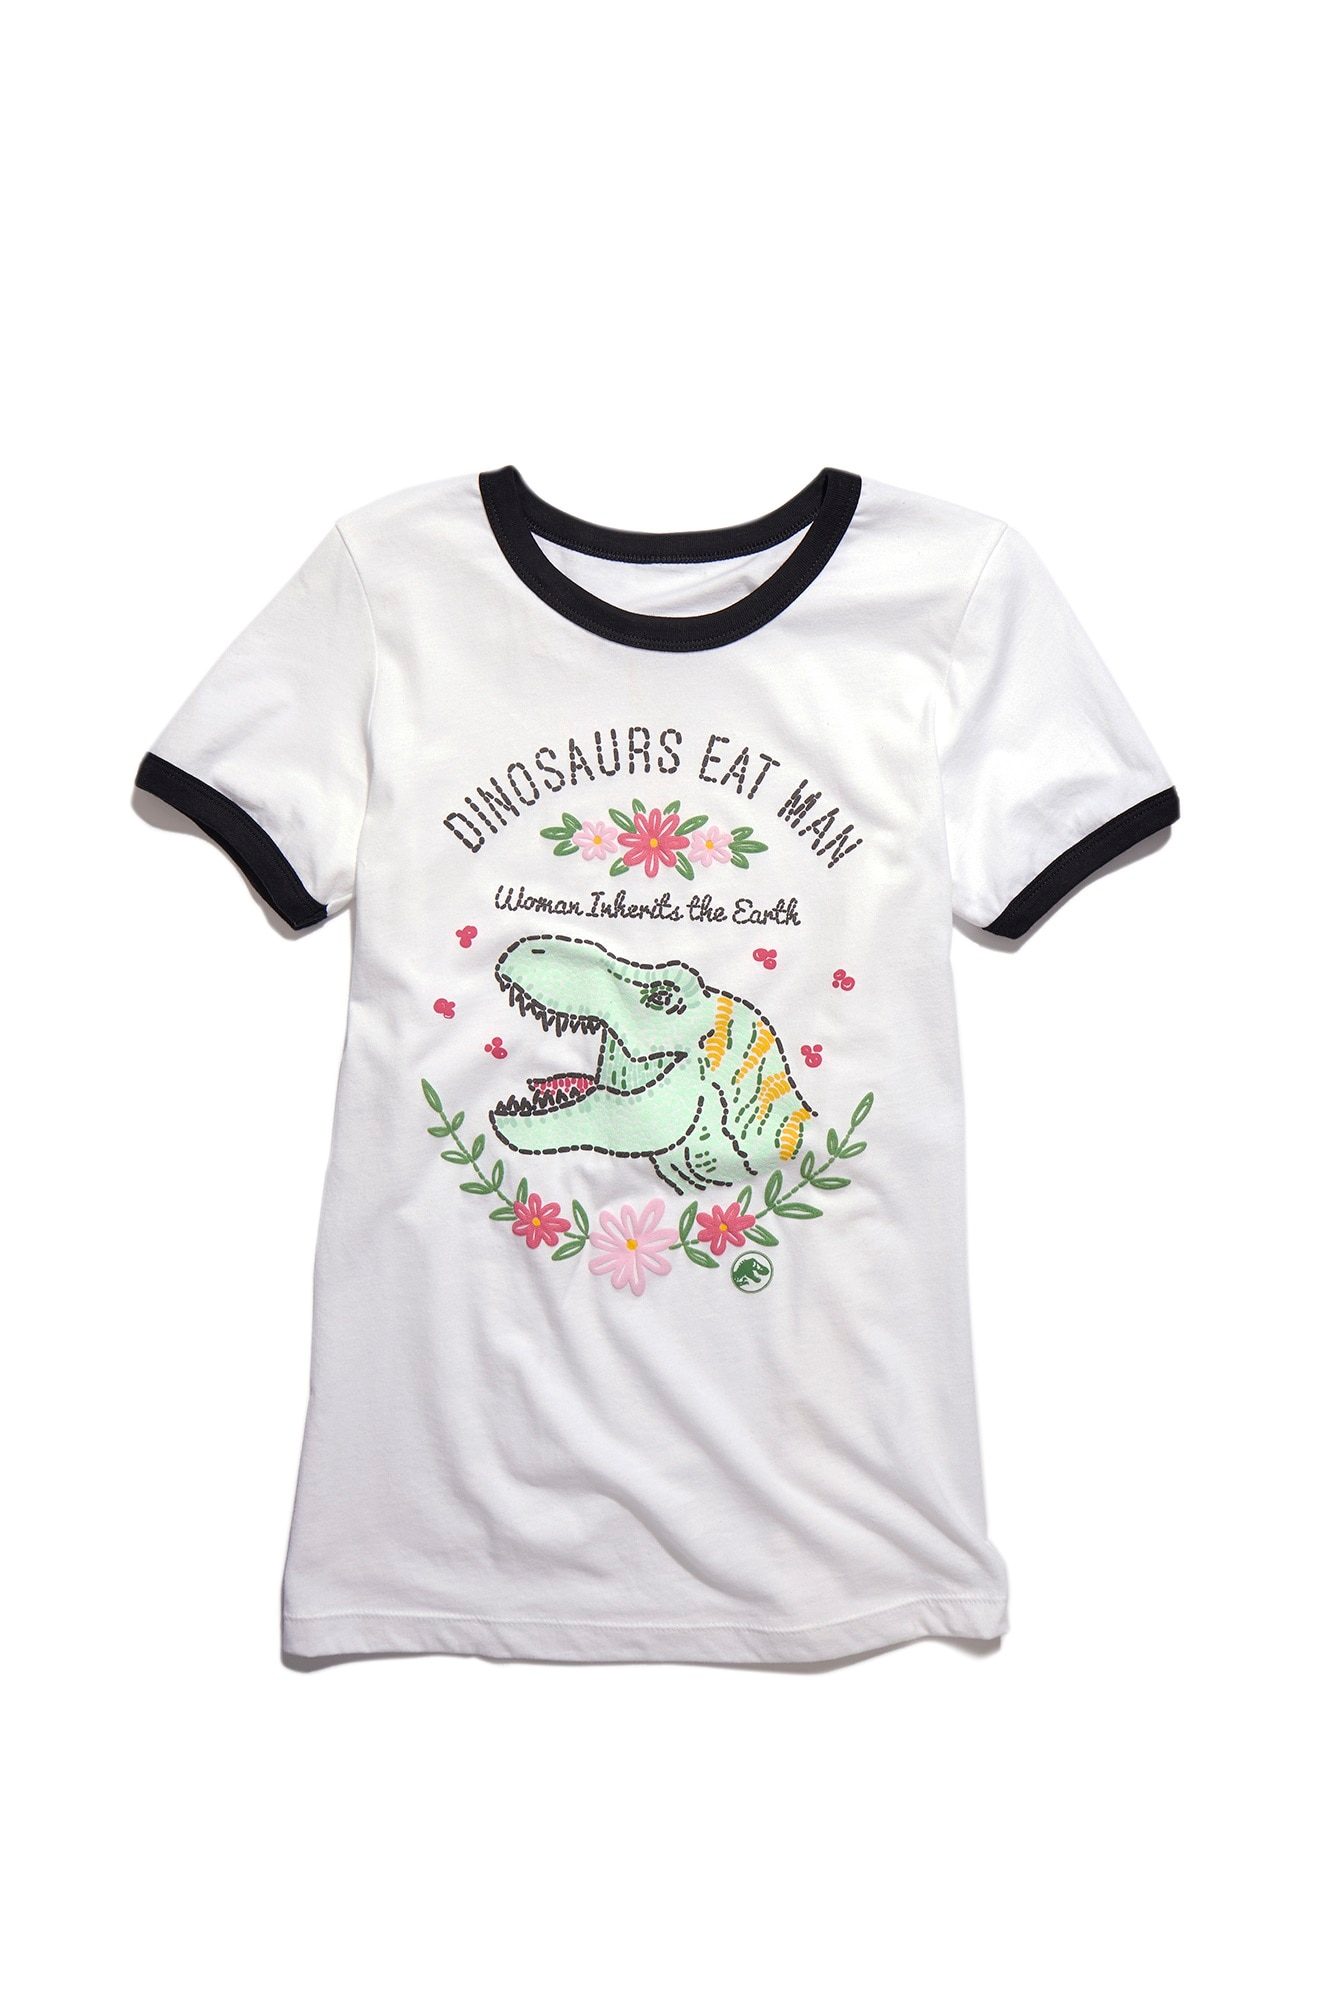 Jurassic World Inherit the Earth Womens Tee - Exclusive: BoxLunch's JURASSIC WORLD Collection for Humans and Pets